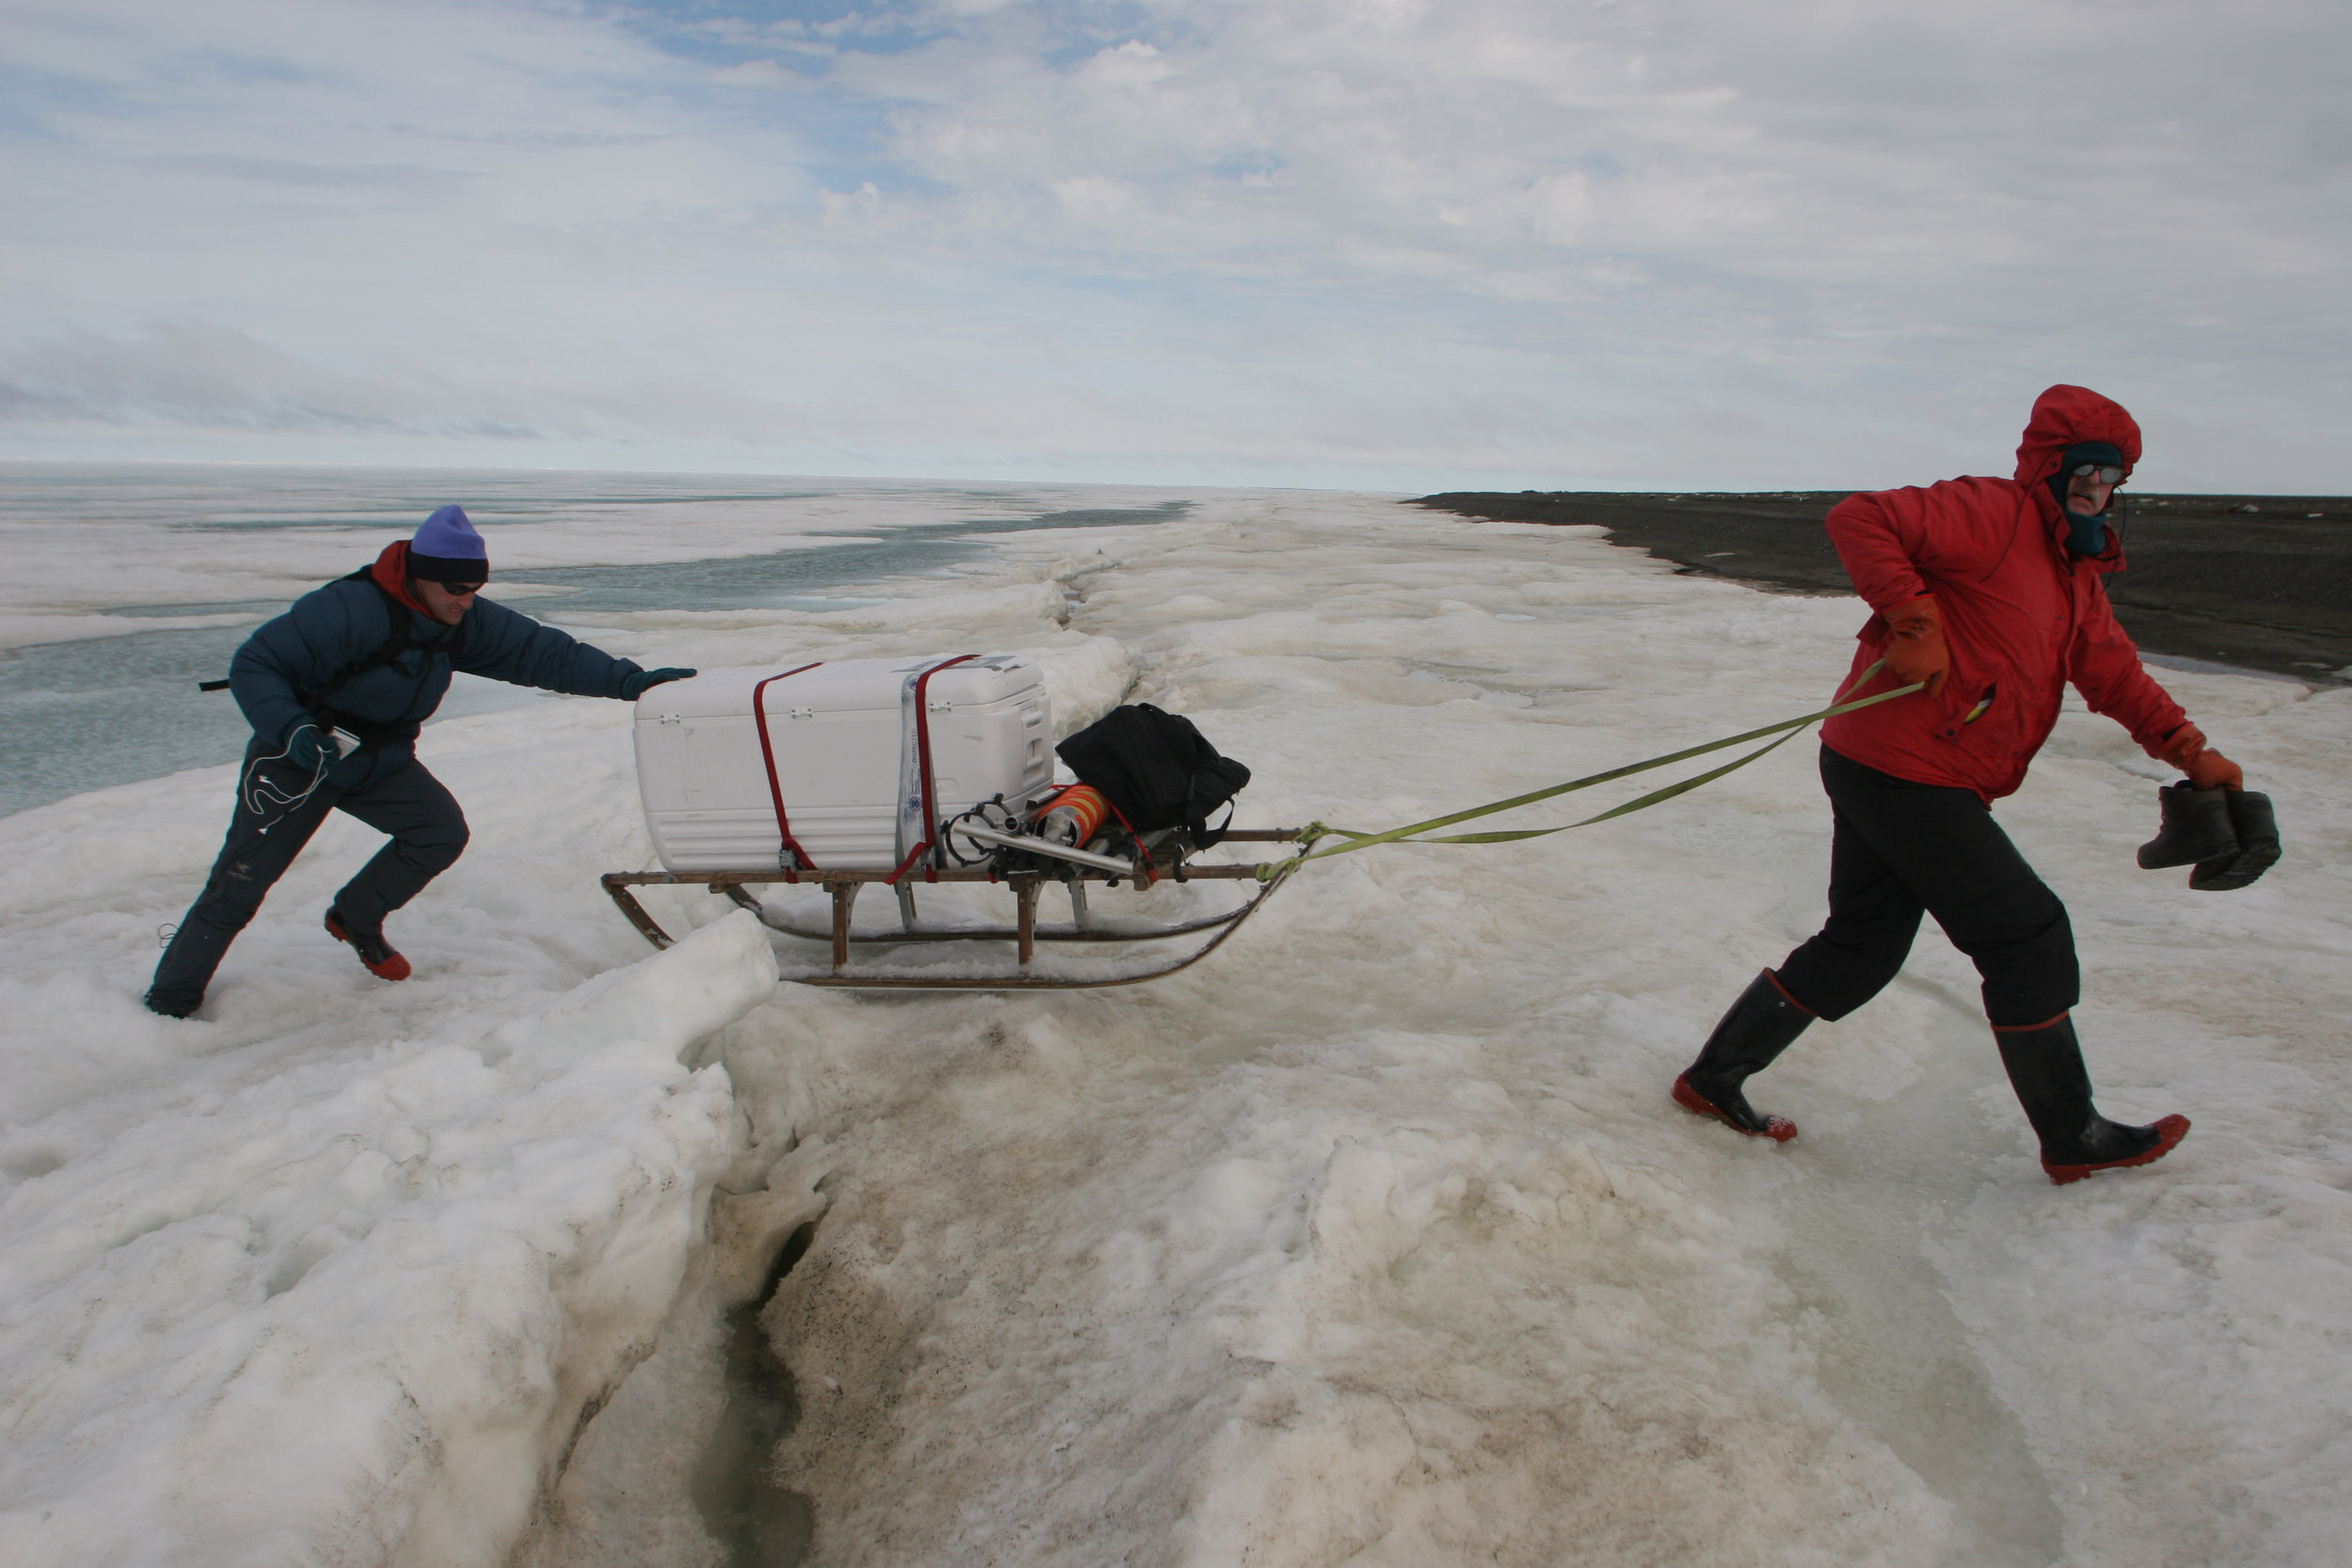 When working in extreme environments, like the Arctic, sometimes journalists have to pitch in. Here, Craig Welch helps a University of Washington climate researcher get his instruments over cracks in Arctic sea ice. PHOTO CREDIT: Steve Ringman